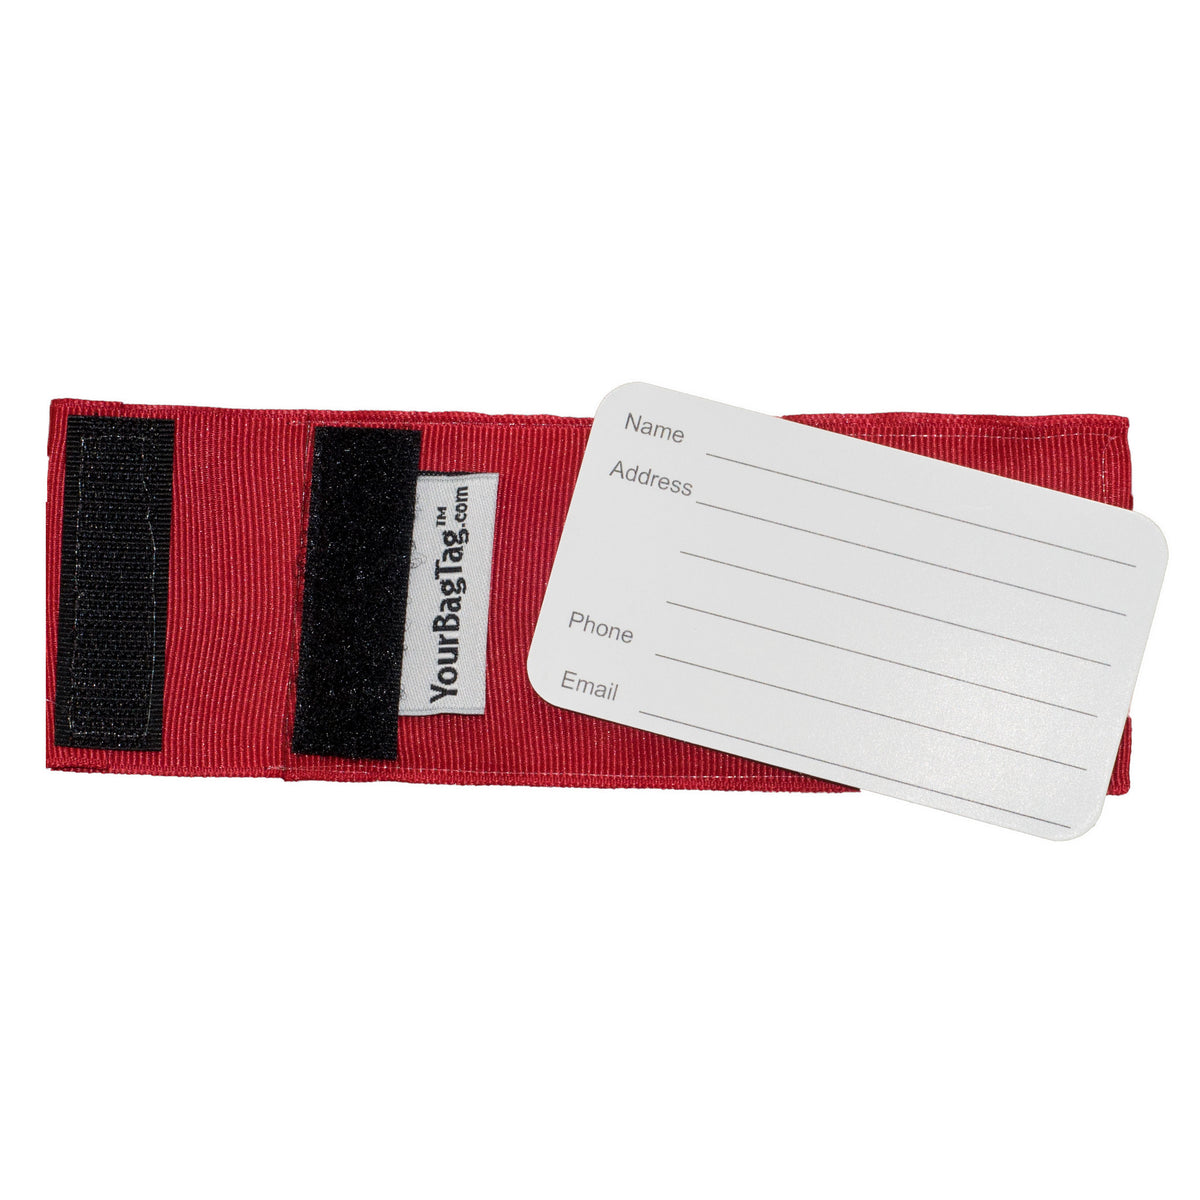 Arkansas Razorback Red Luggage Tags